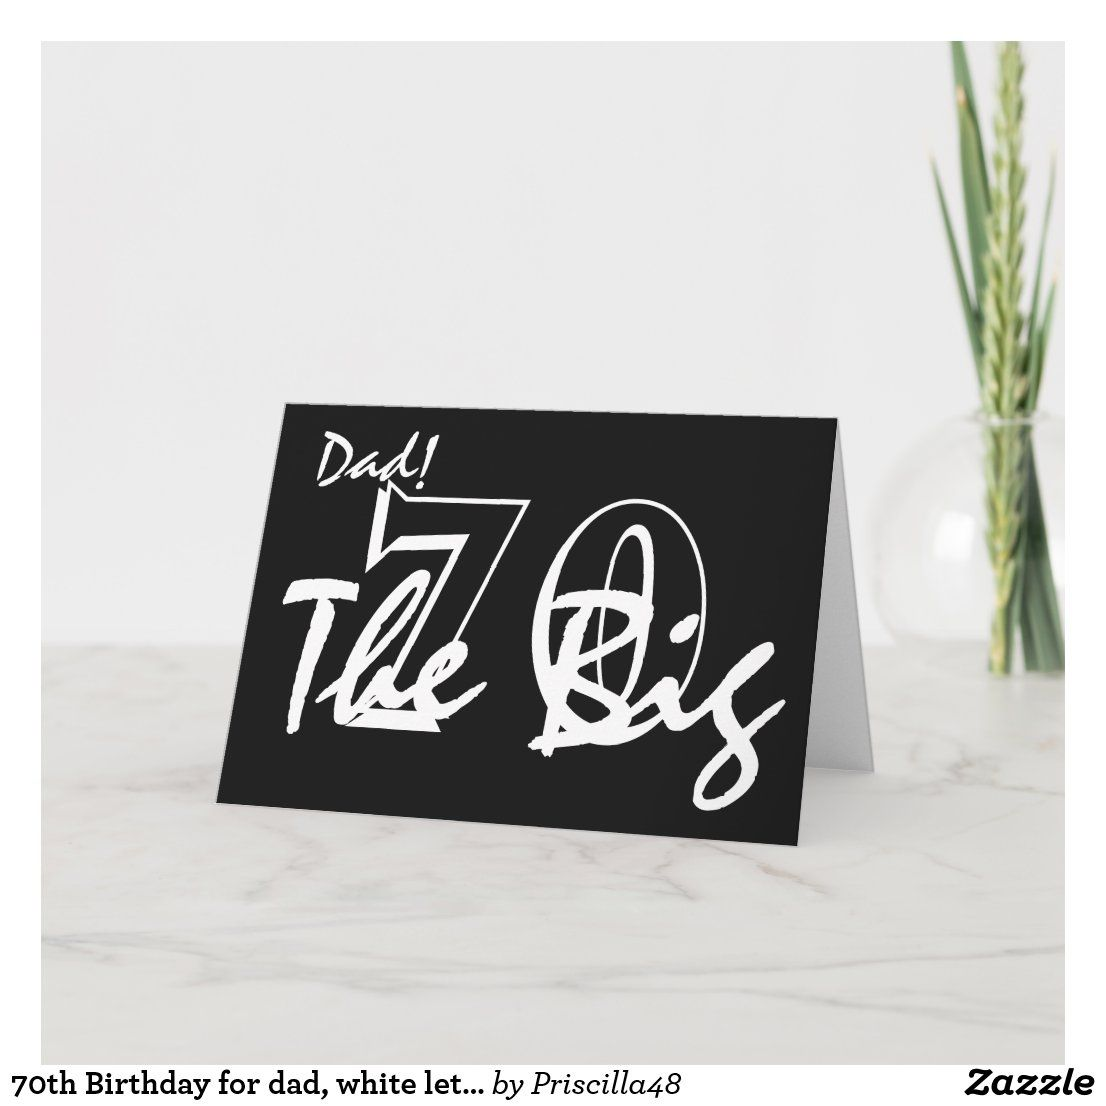 Handmade 70th Male Birthday Card Dad Personalised With Any Age And Message 60th Birthday Cards 70th Birthday Card Birthday Cards For Men